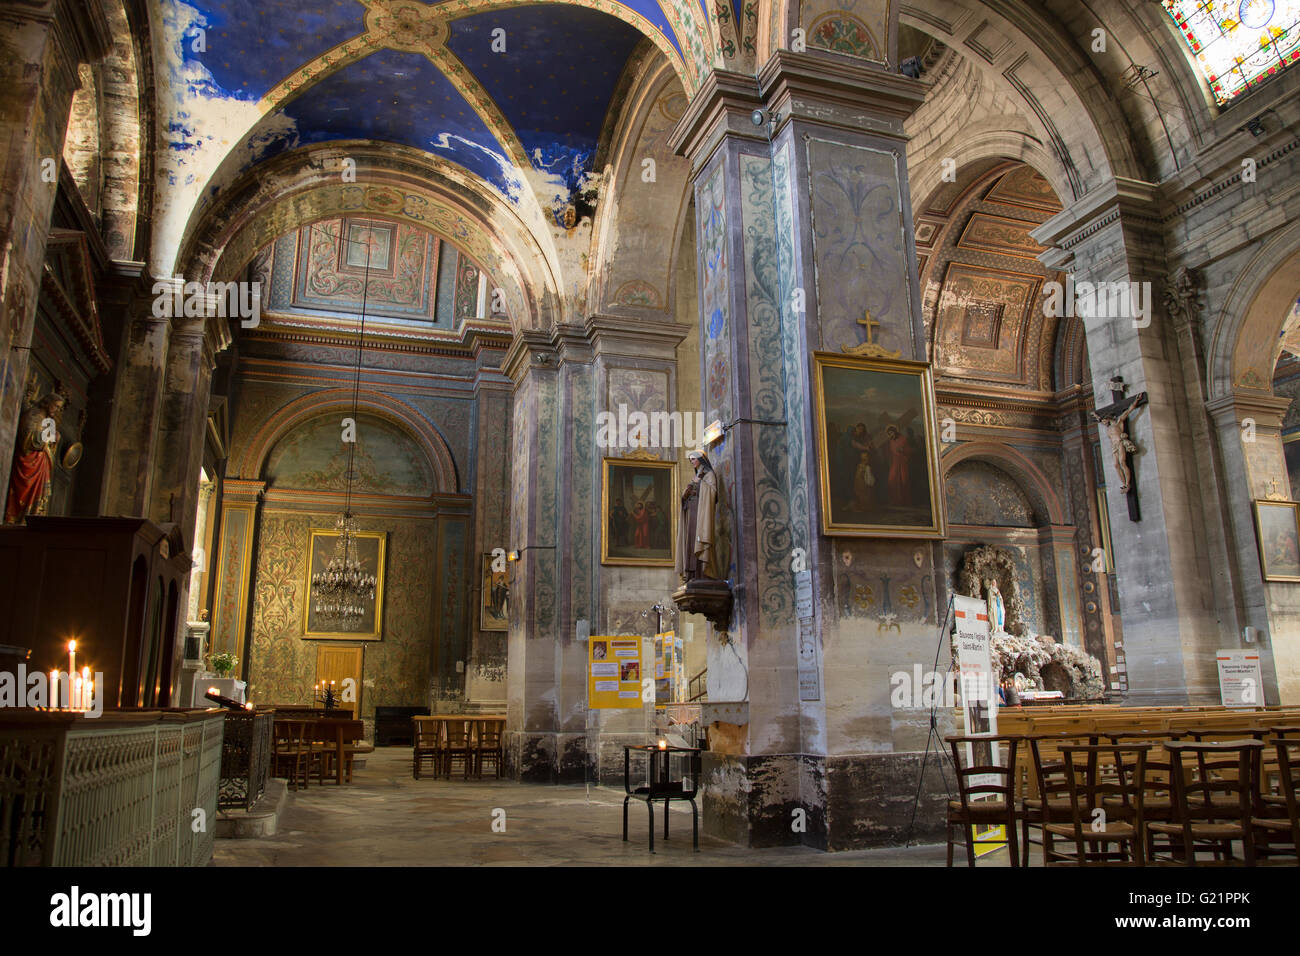 St Remy The Church Of Saint Remy Stock Photos And The Church Of